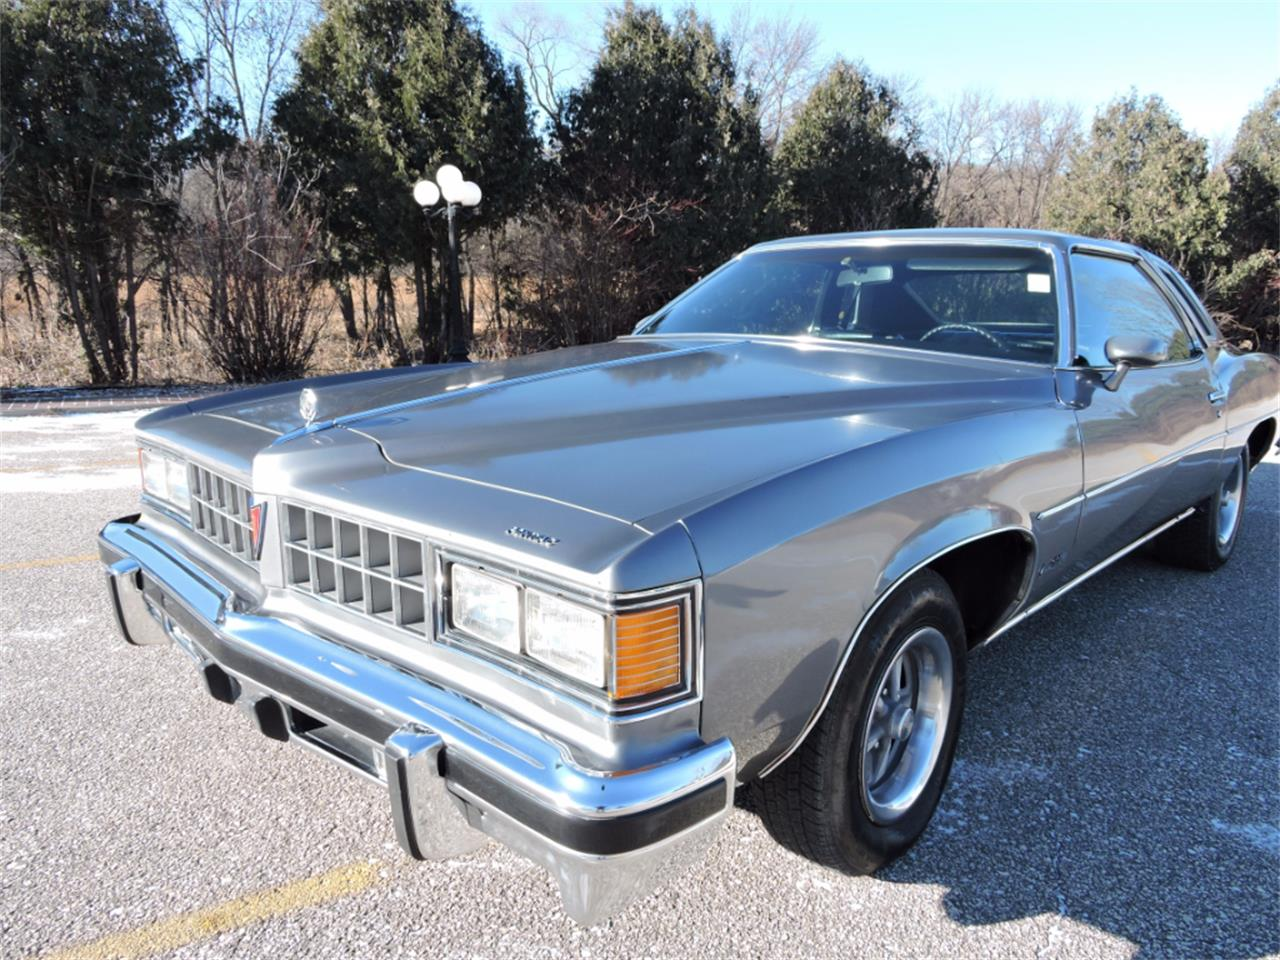 1977 Pontiac Grand LeMans for sale in Greene, IA – photo 37